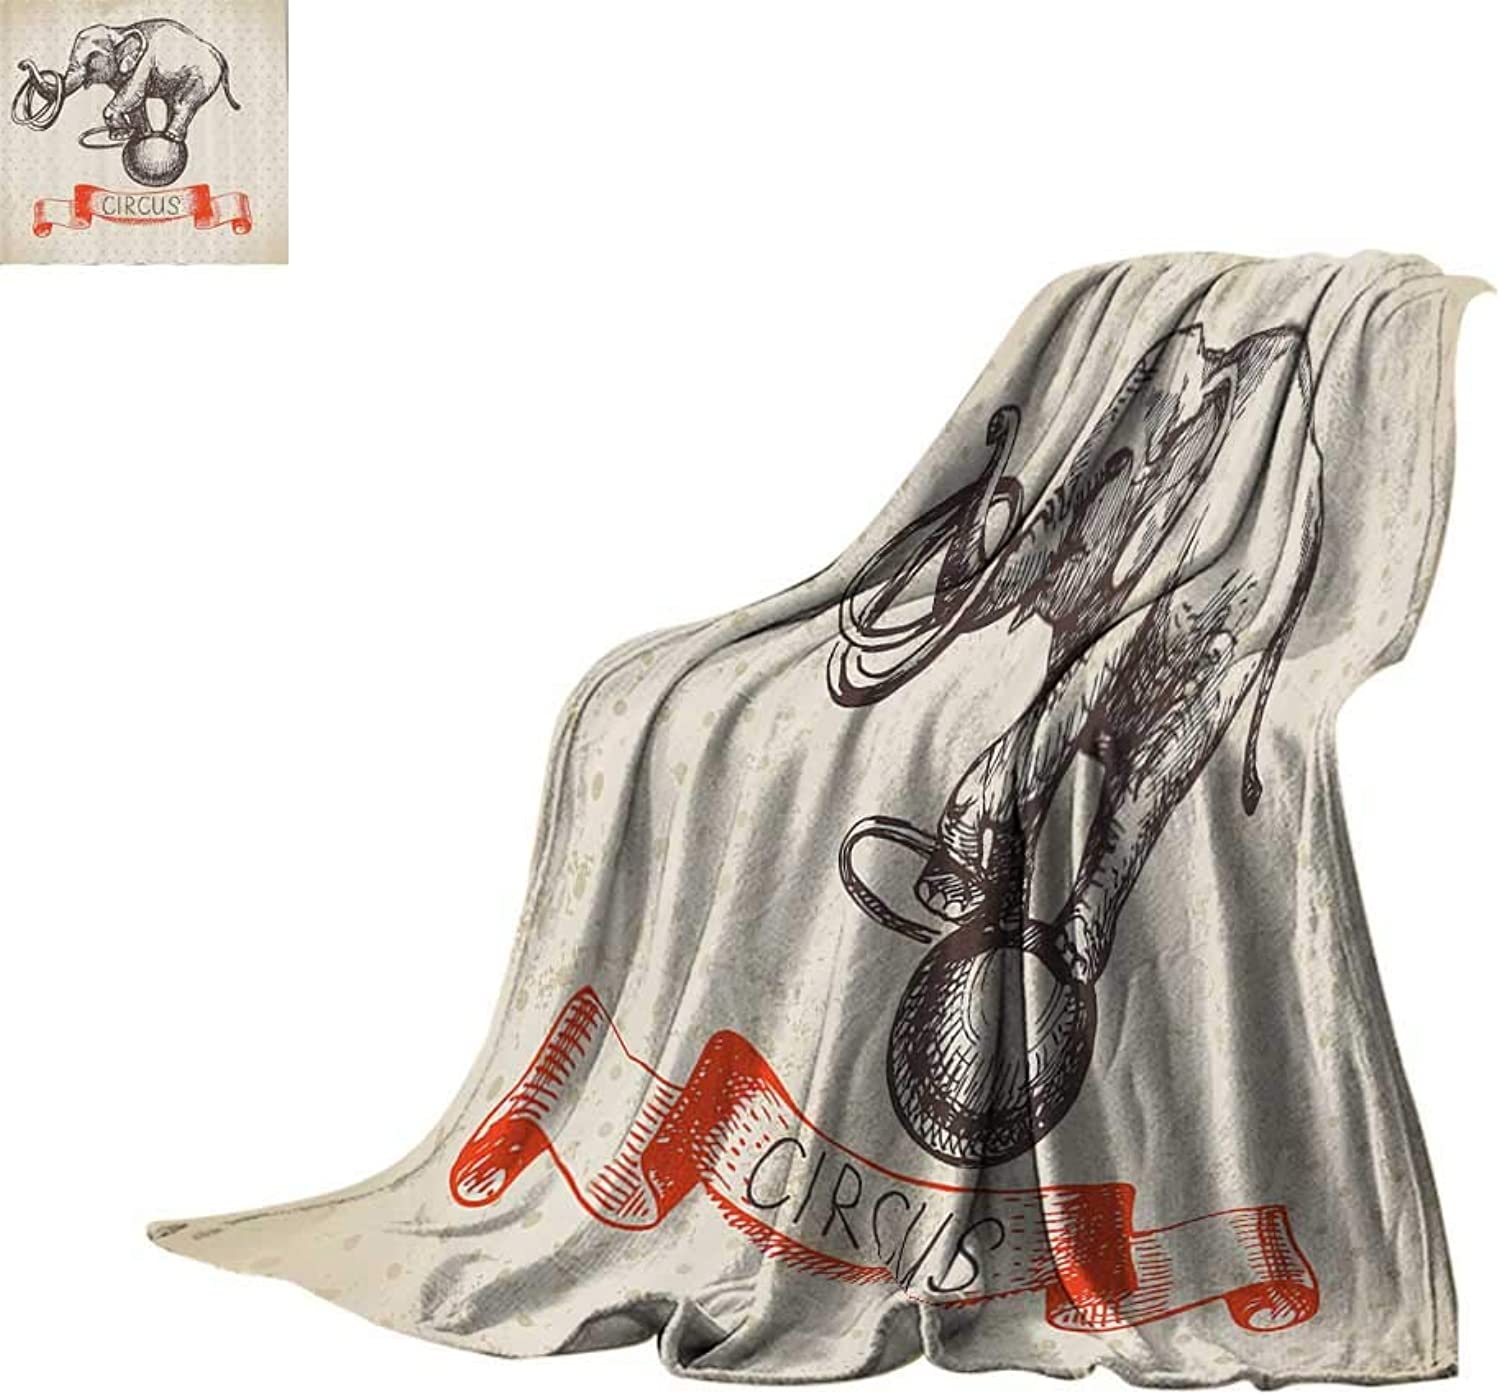 Cozy Flannel Blanket Vintage Decor Collection,Hand Drawn Dancing Elephant Circus Vintage Background Wizard Miracle Wonder Animal Humor,Ecru Red Print Summer Quilt Comforter Bed or Couch 60 x35